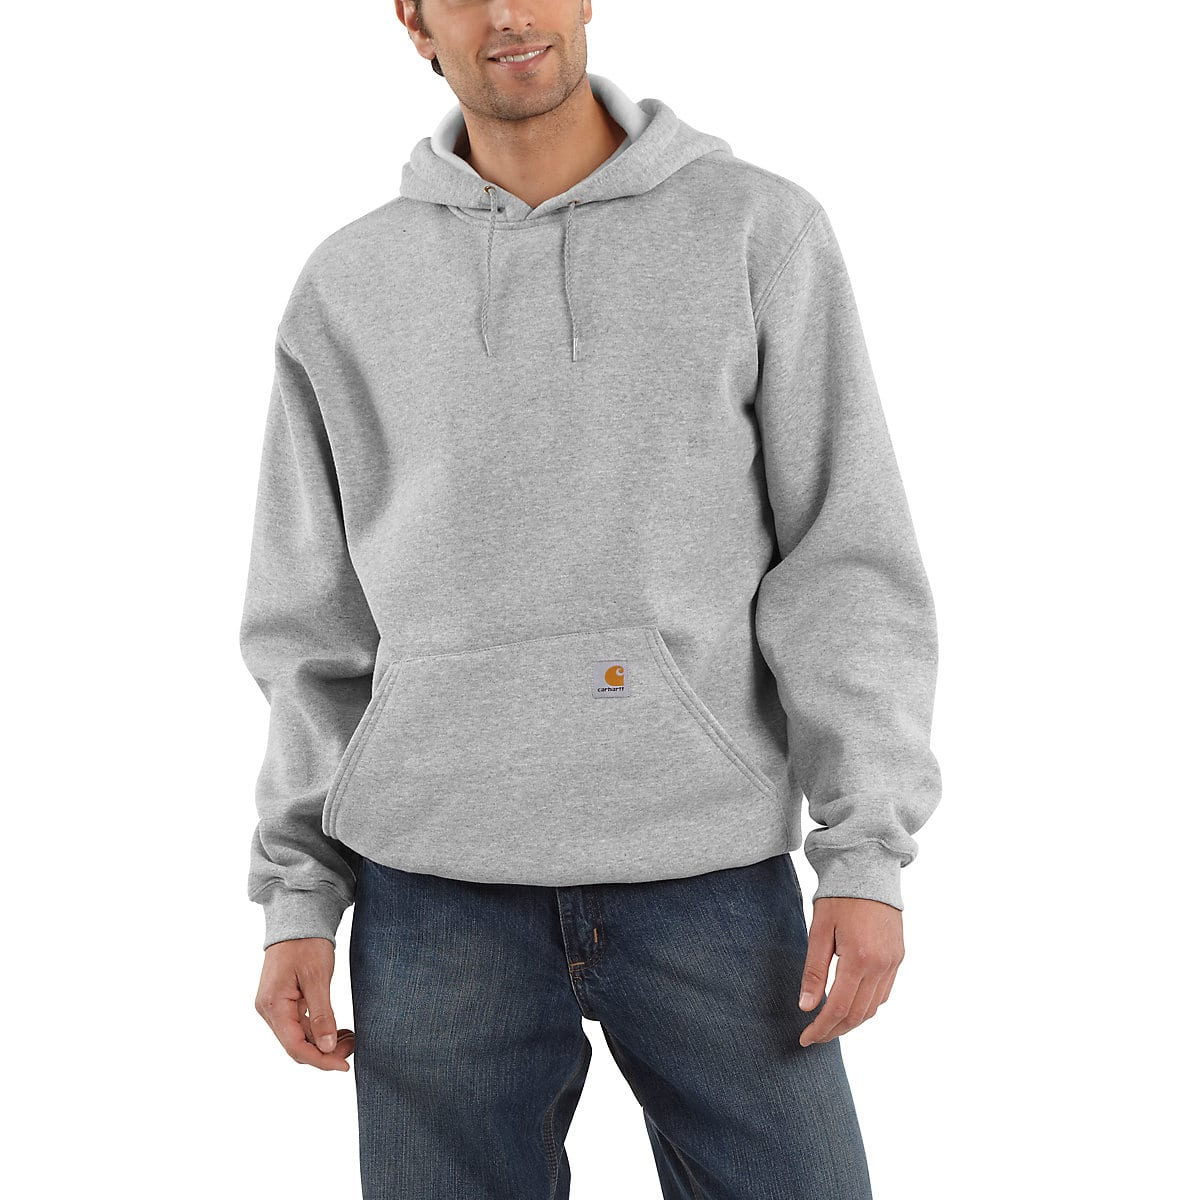 Style by William Basic Pullover Fleece Hooded Sweatshirt Olive L